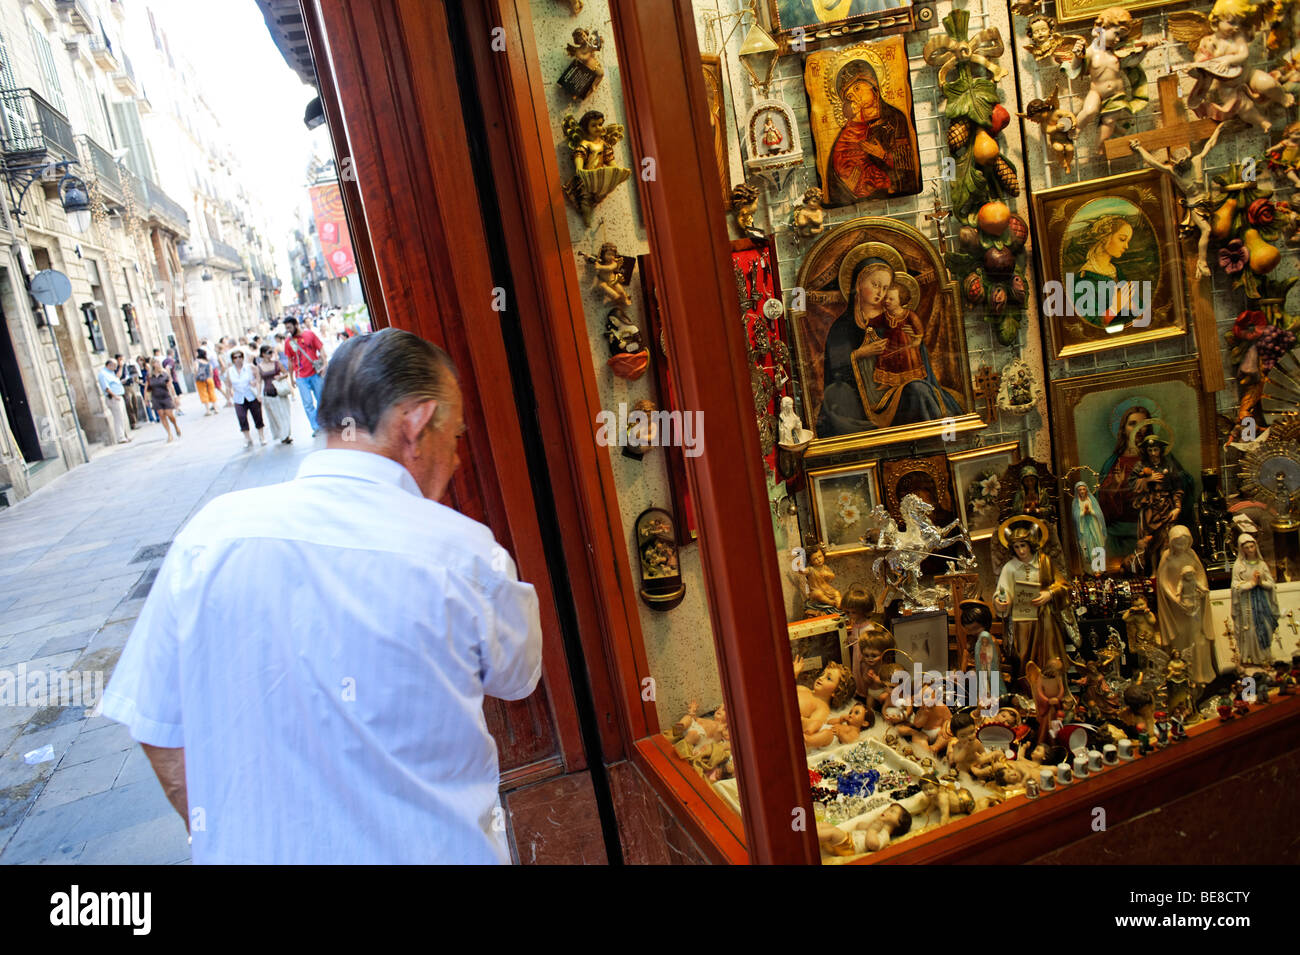 Old traditional shop selling catholic iconography in Barri Gotic. Barcelona. Spain - Stock Image